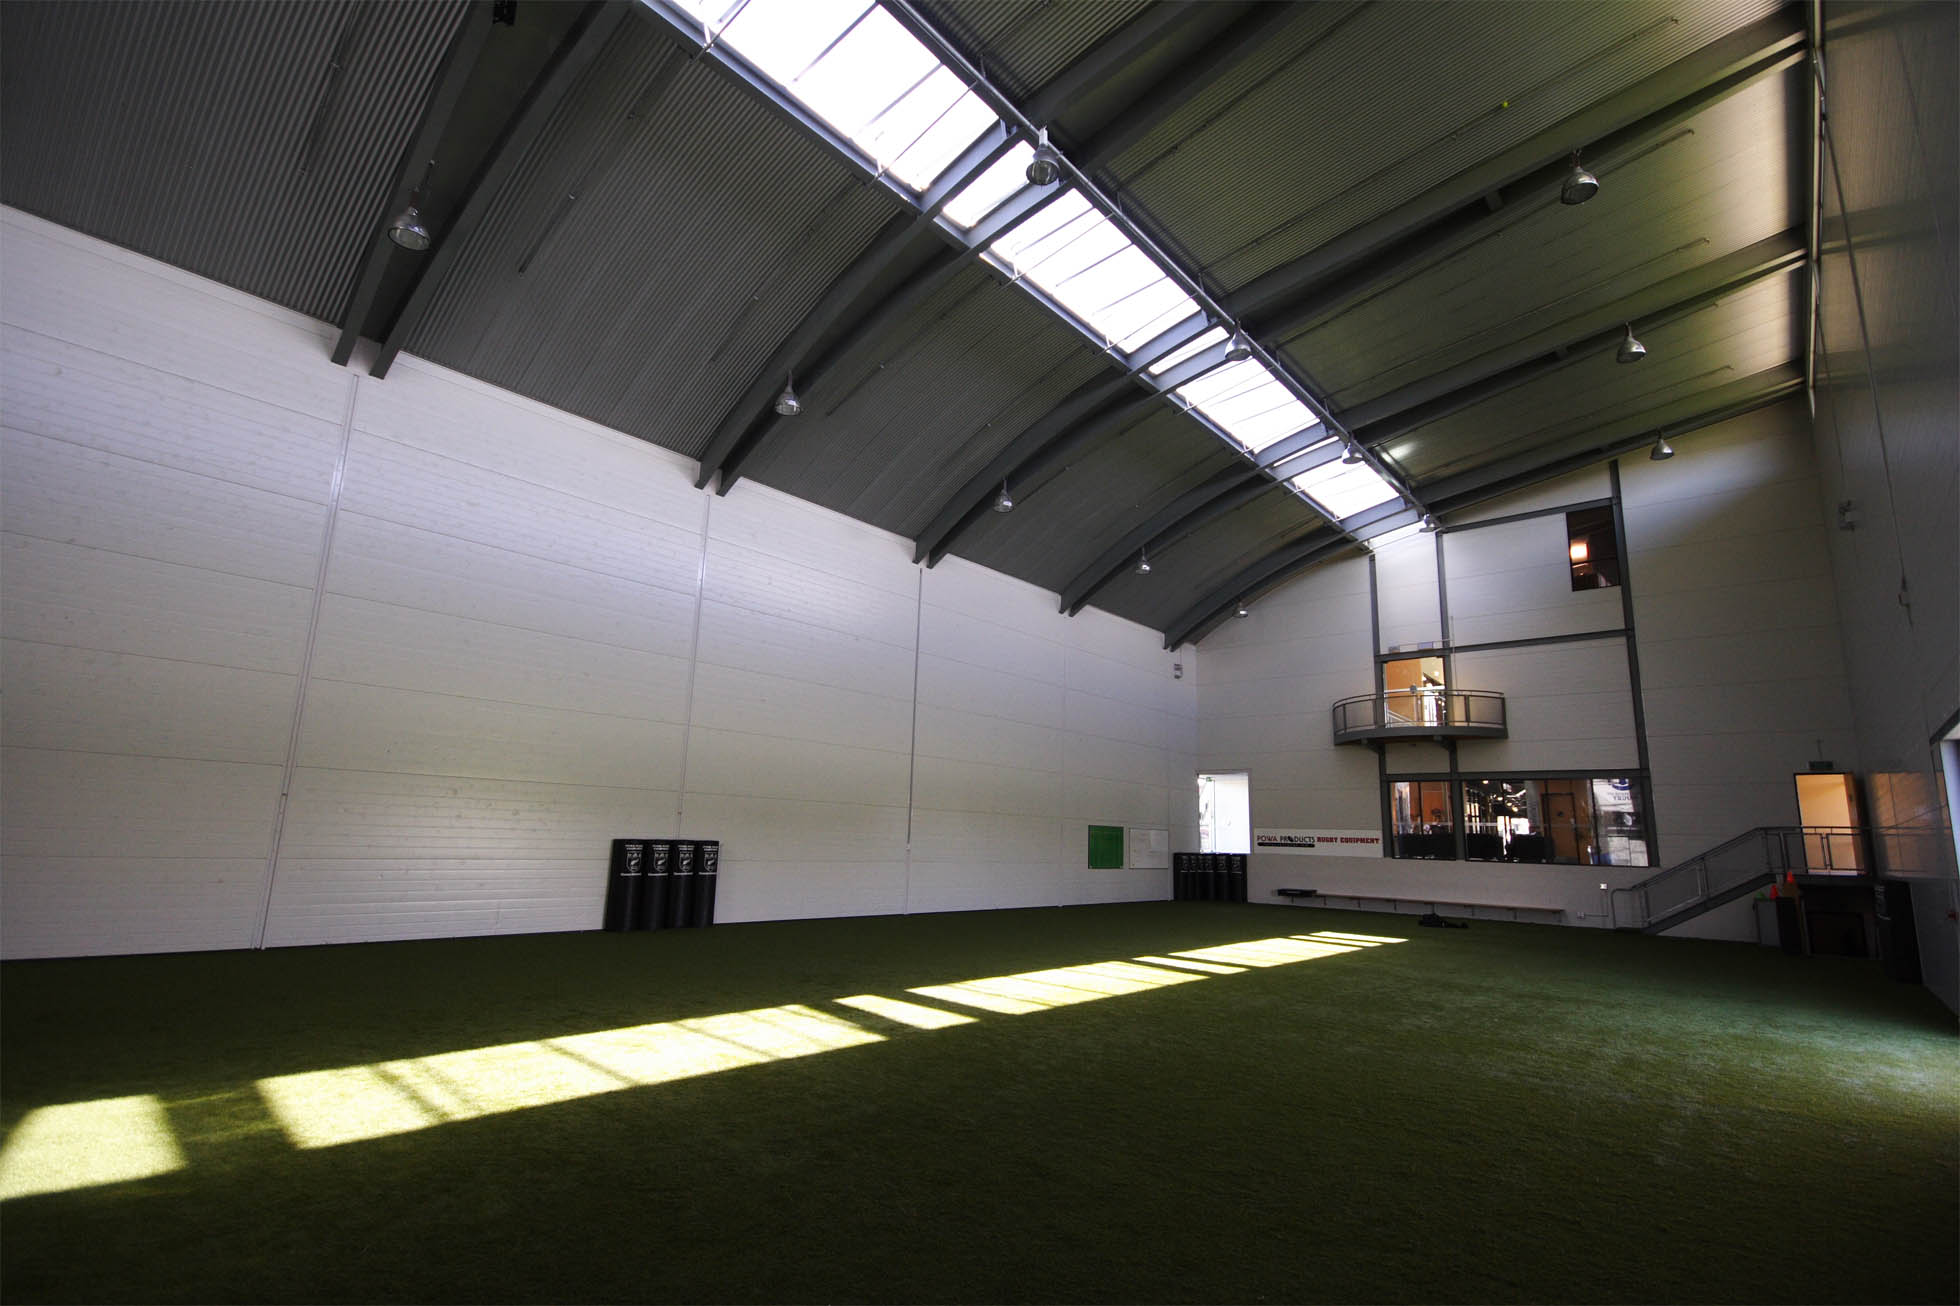 The turf-lined green room allows practice to take place, regardless of the weather